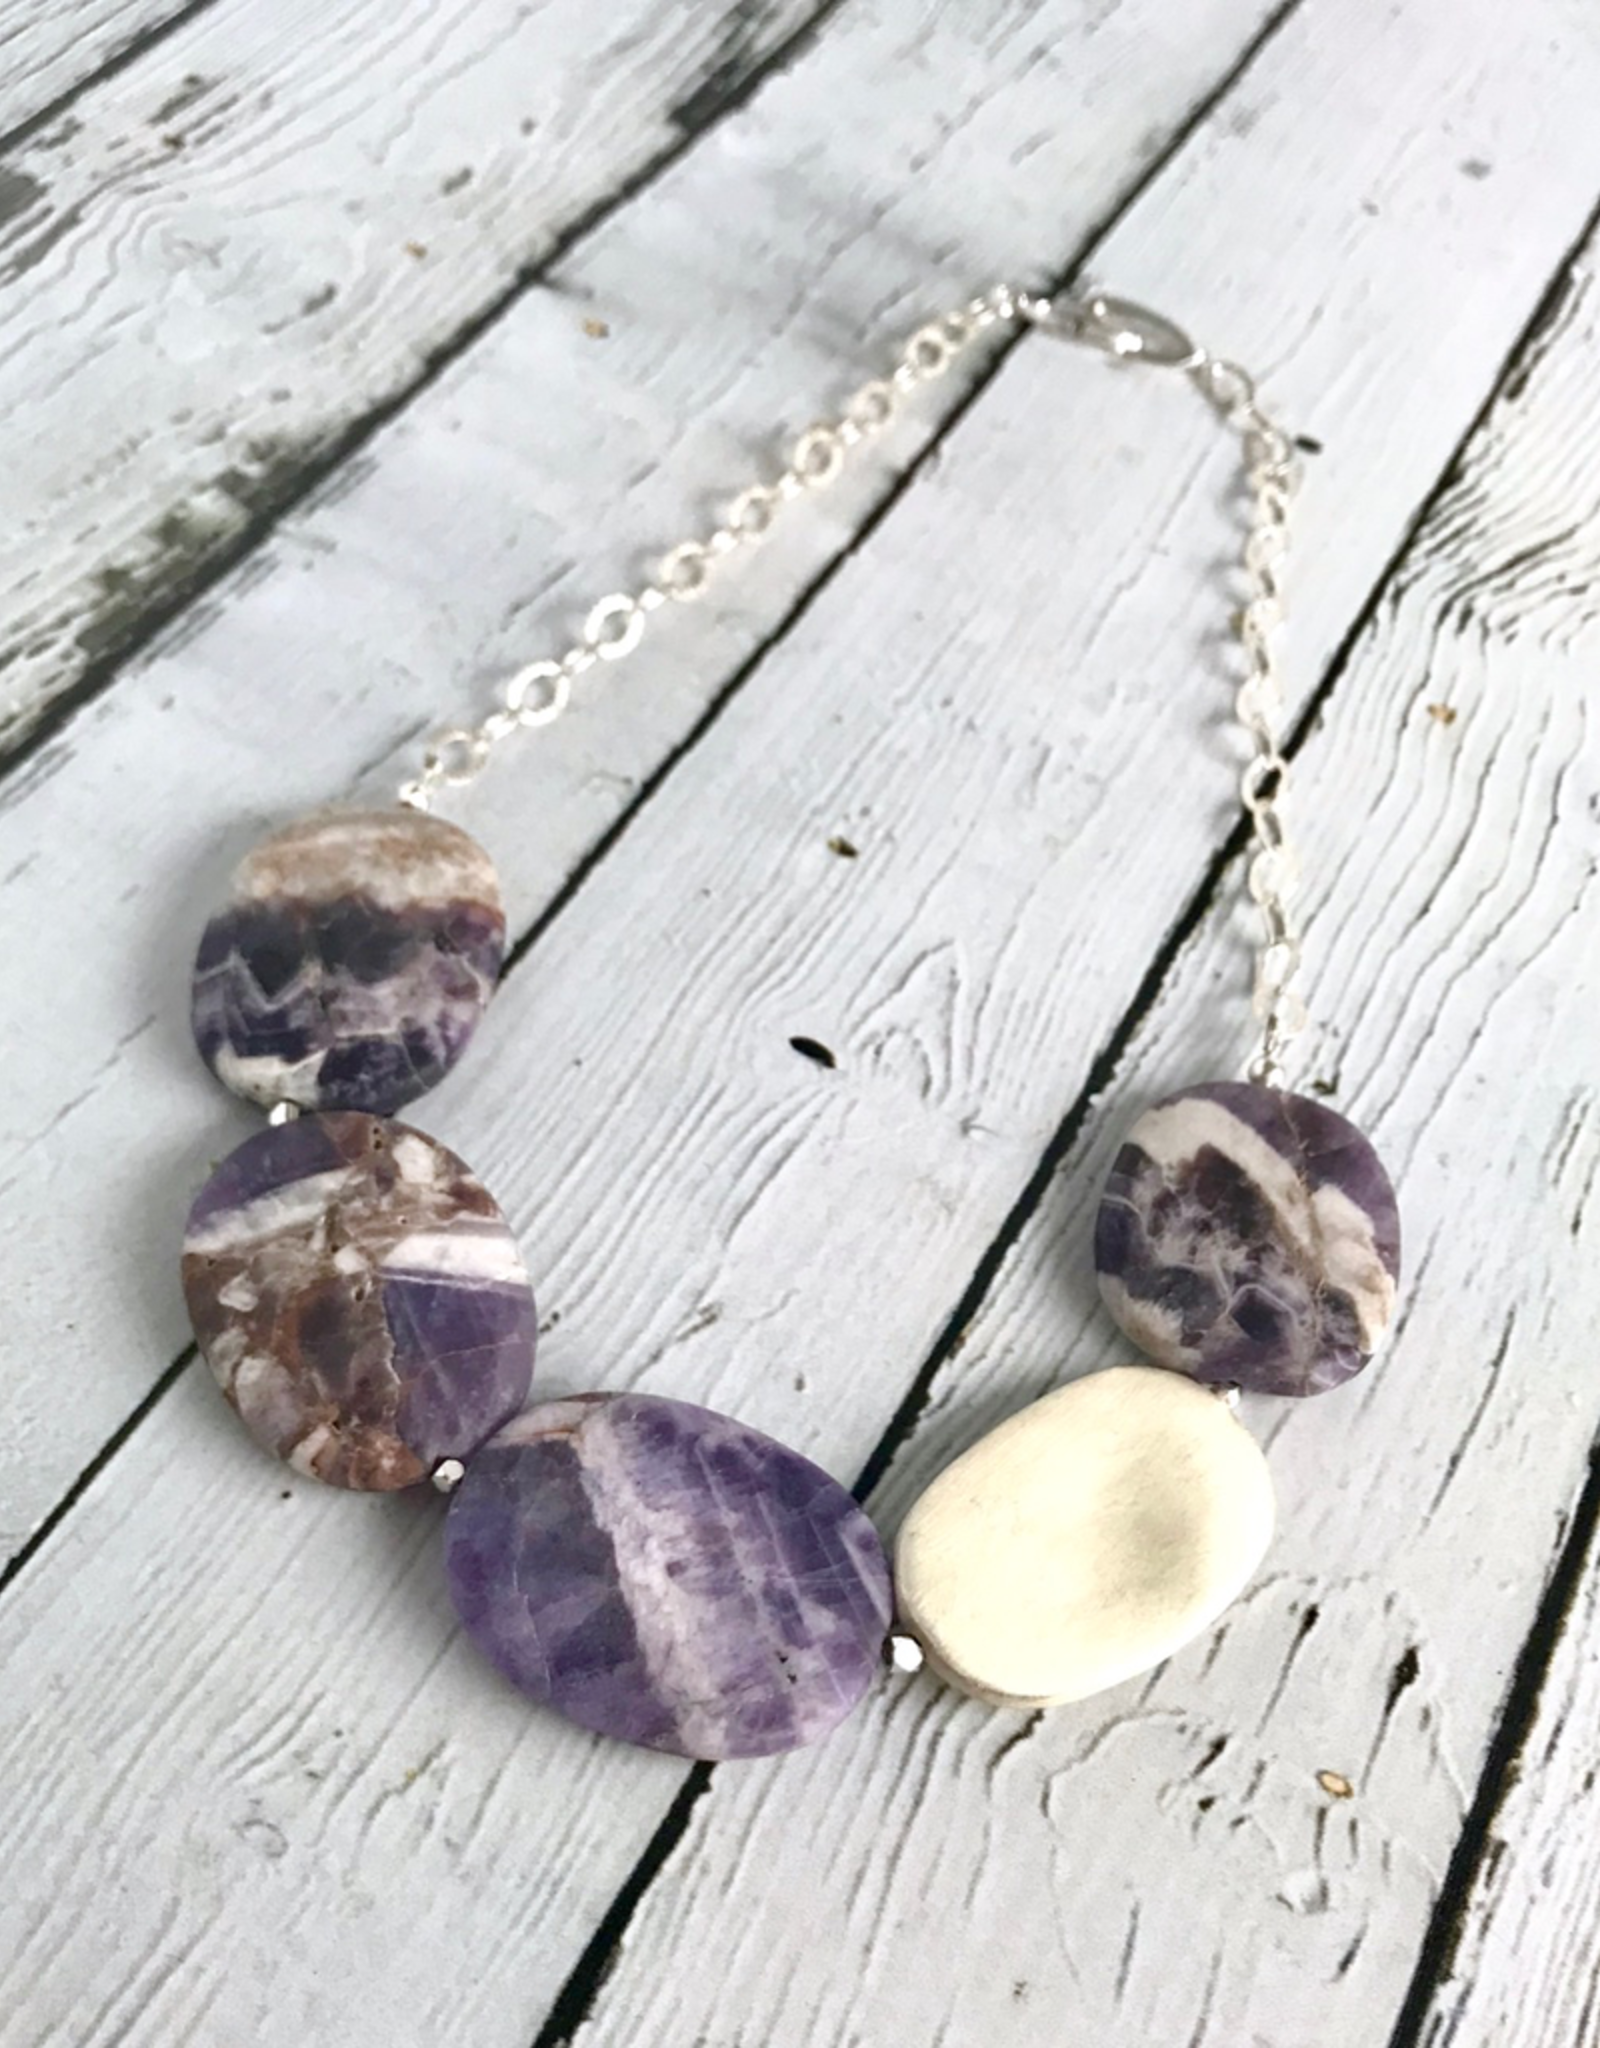 Handmade Necklace with Large Smooth Matte Dogtooth Amethyst and Brushed Silver Stones